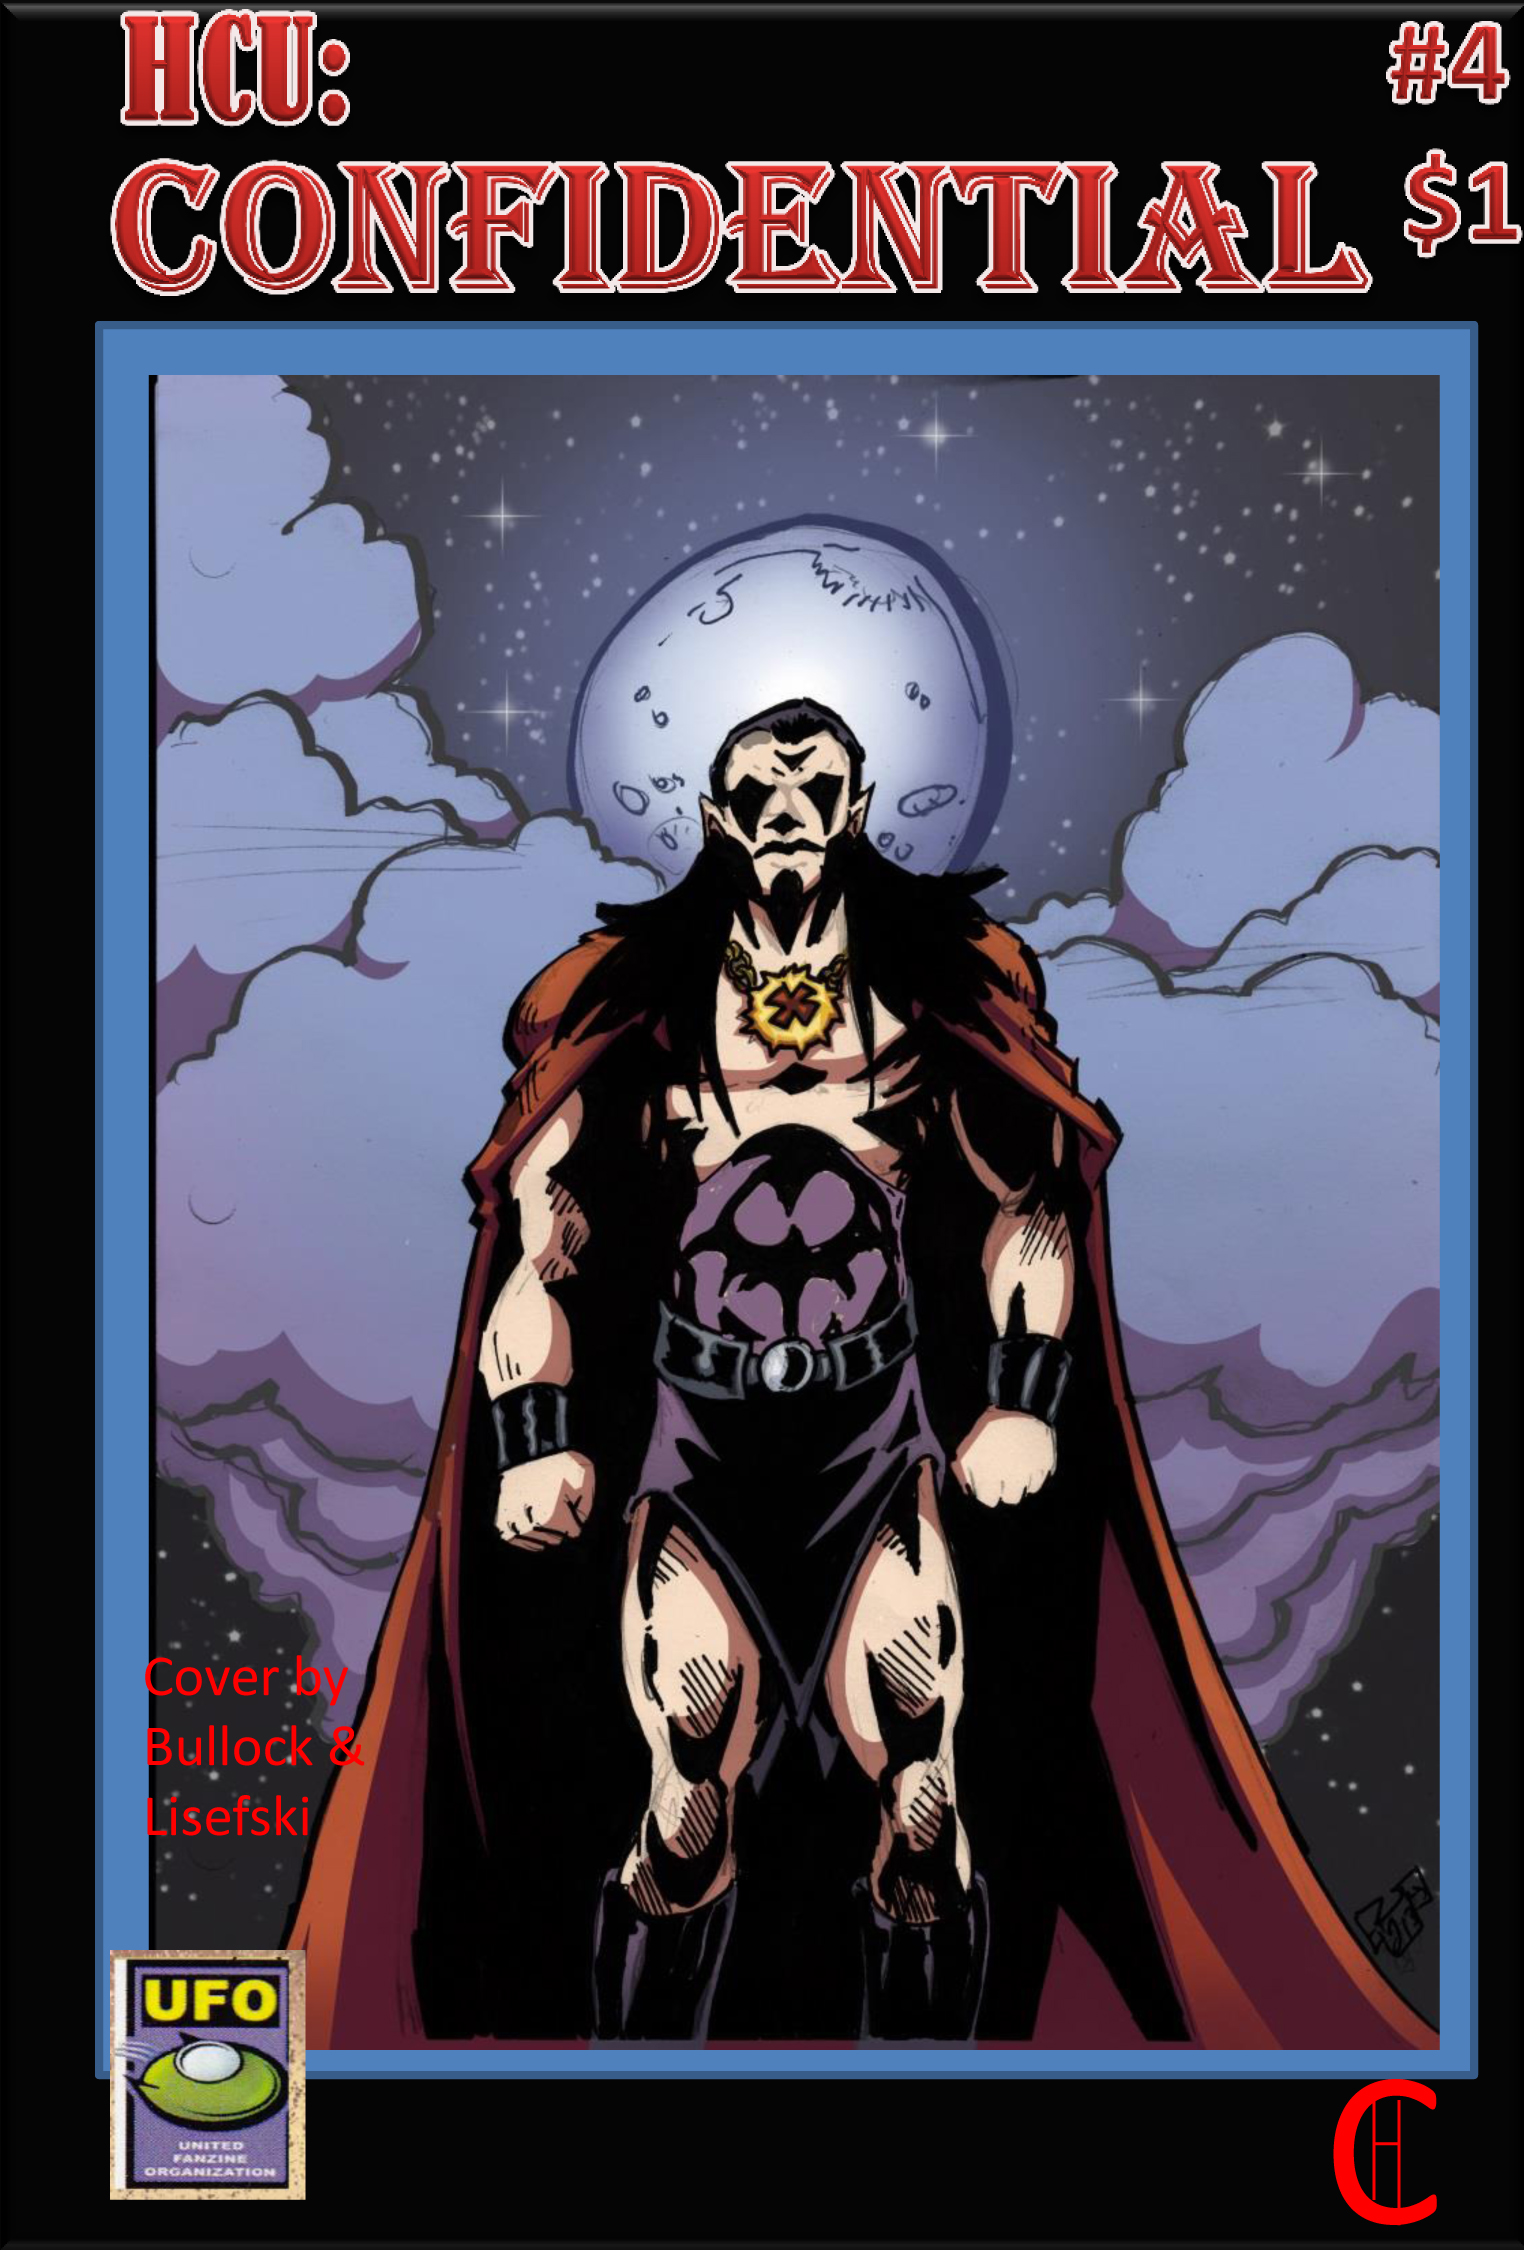 Catching up on history of the Pantheon Rising. Wiki-Myth featuring Raiden and second part of internal comic Parallel Earth.